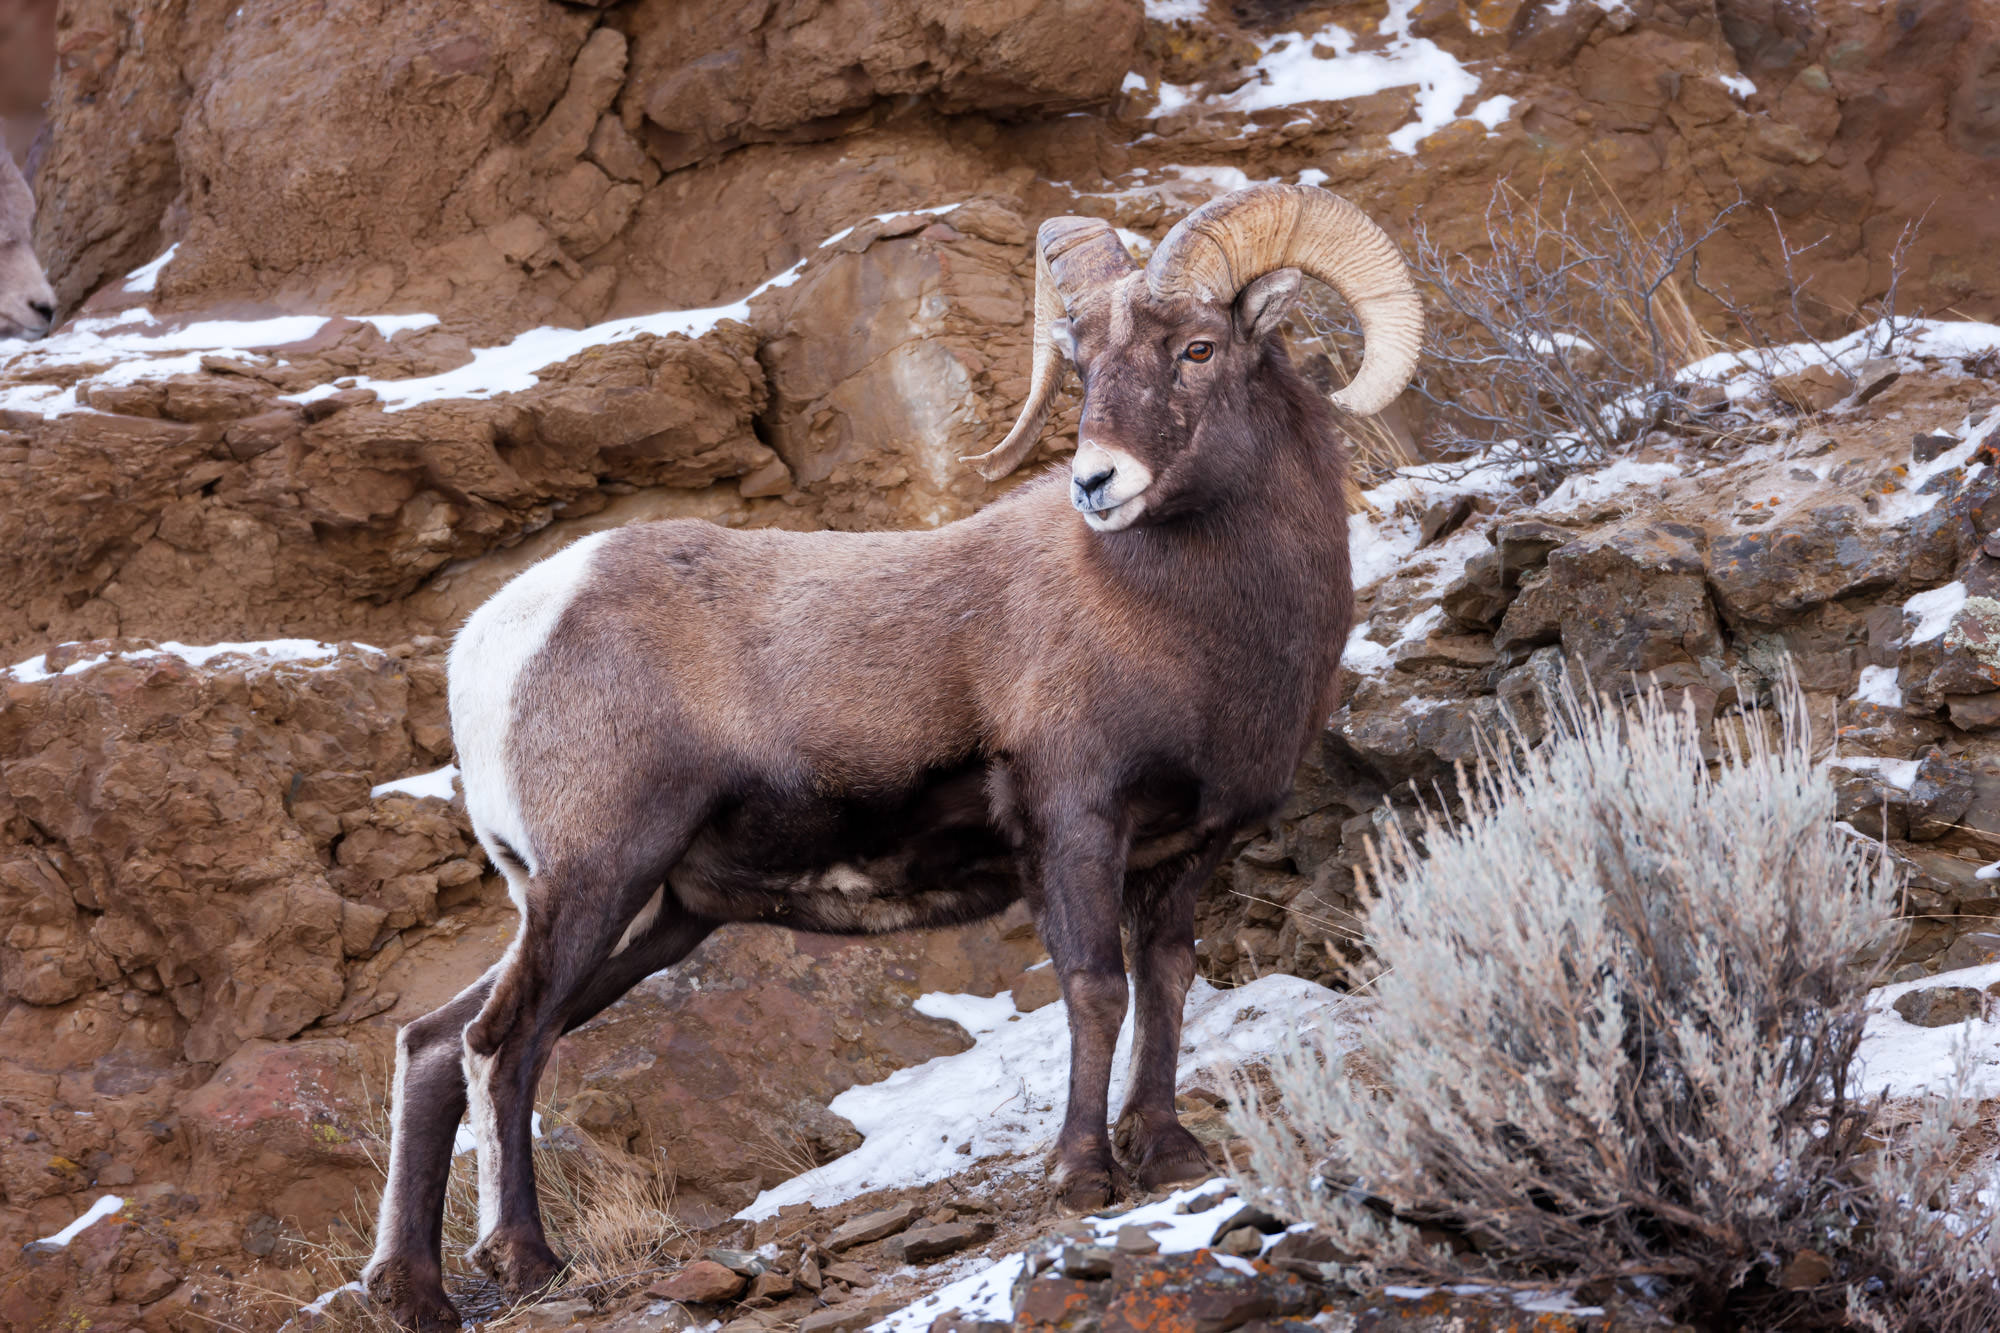 Bighorn Sheep Fine Art Photography A Limited Edition photograph of a large Bighorn Ram standing on the rocks. This Fine Art Wildlife...